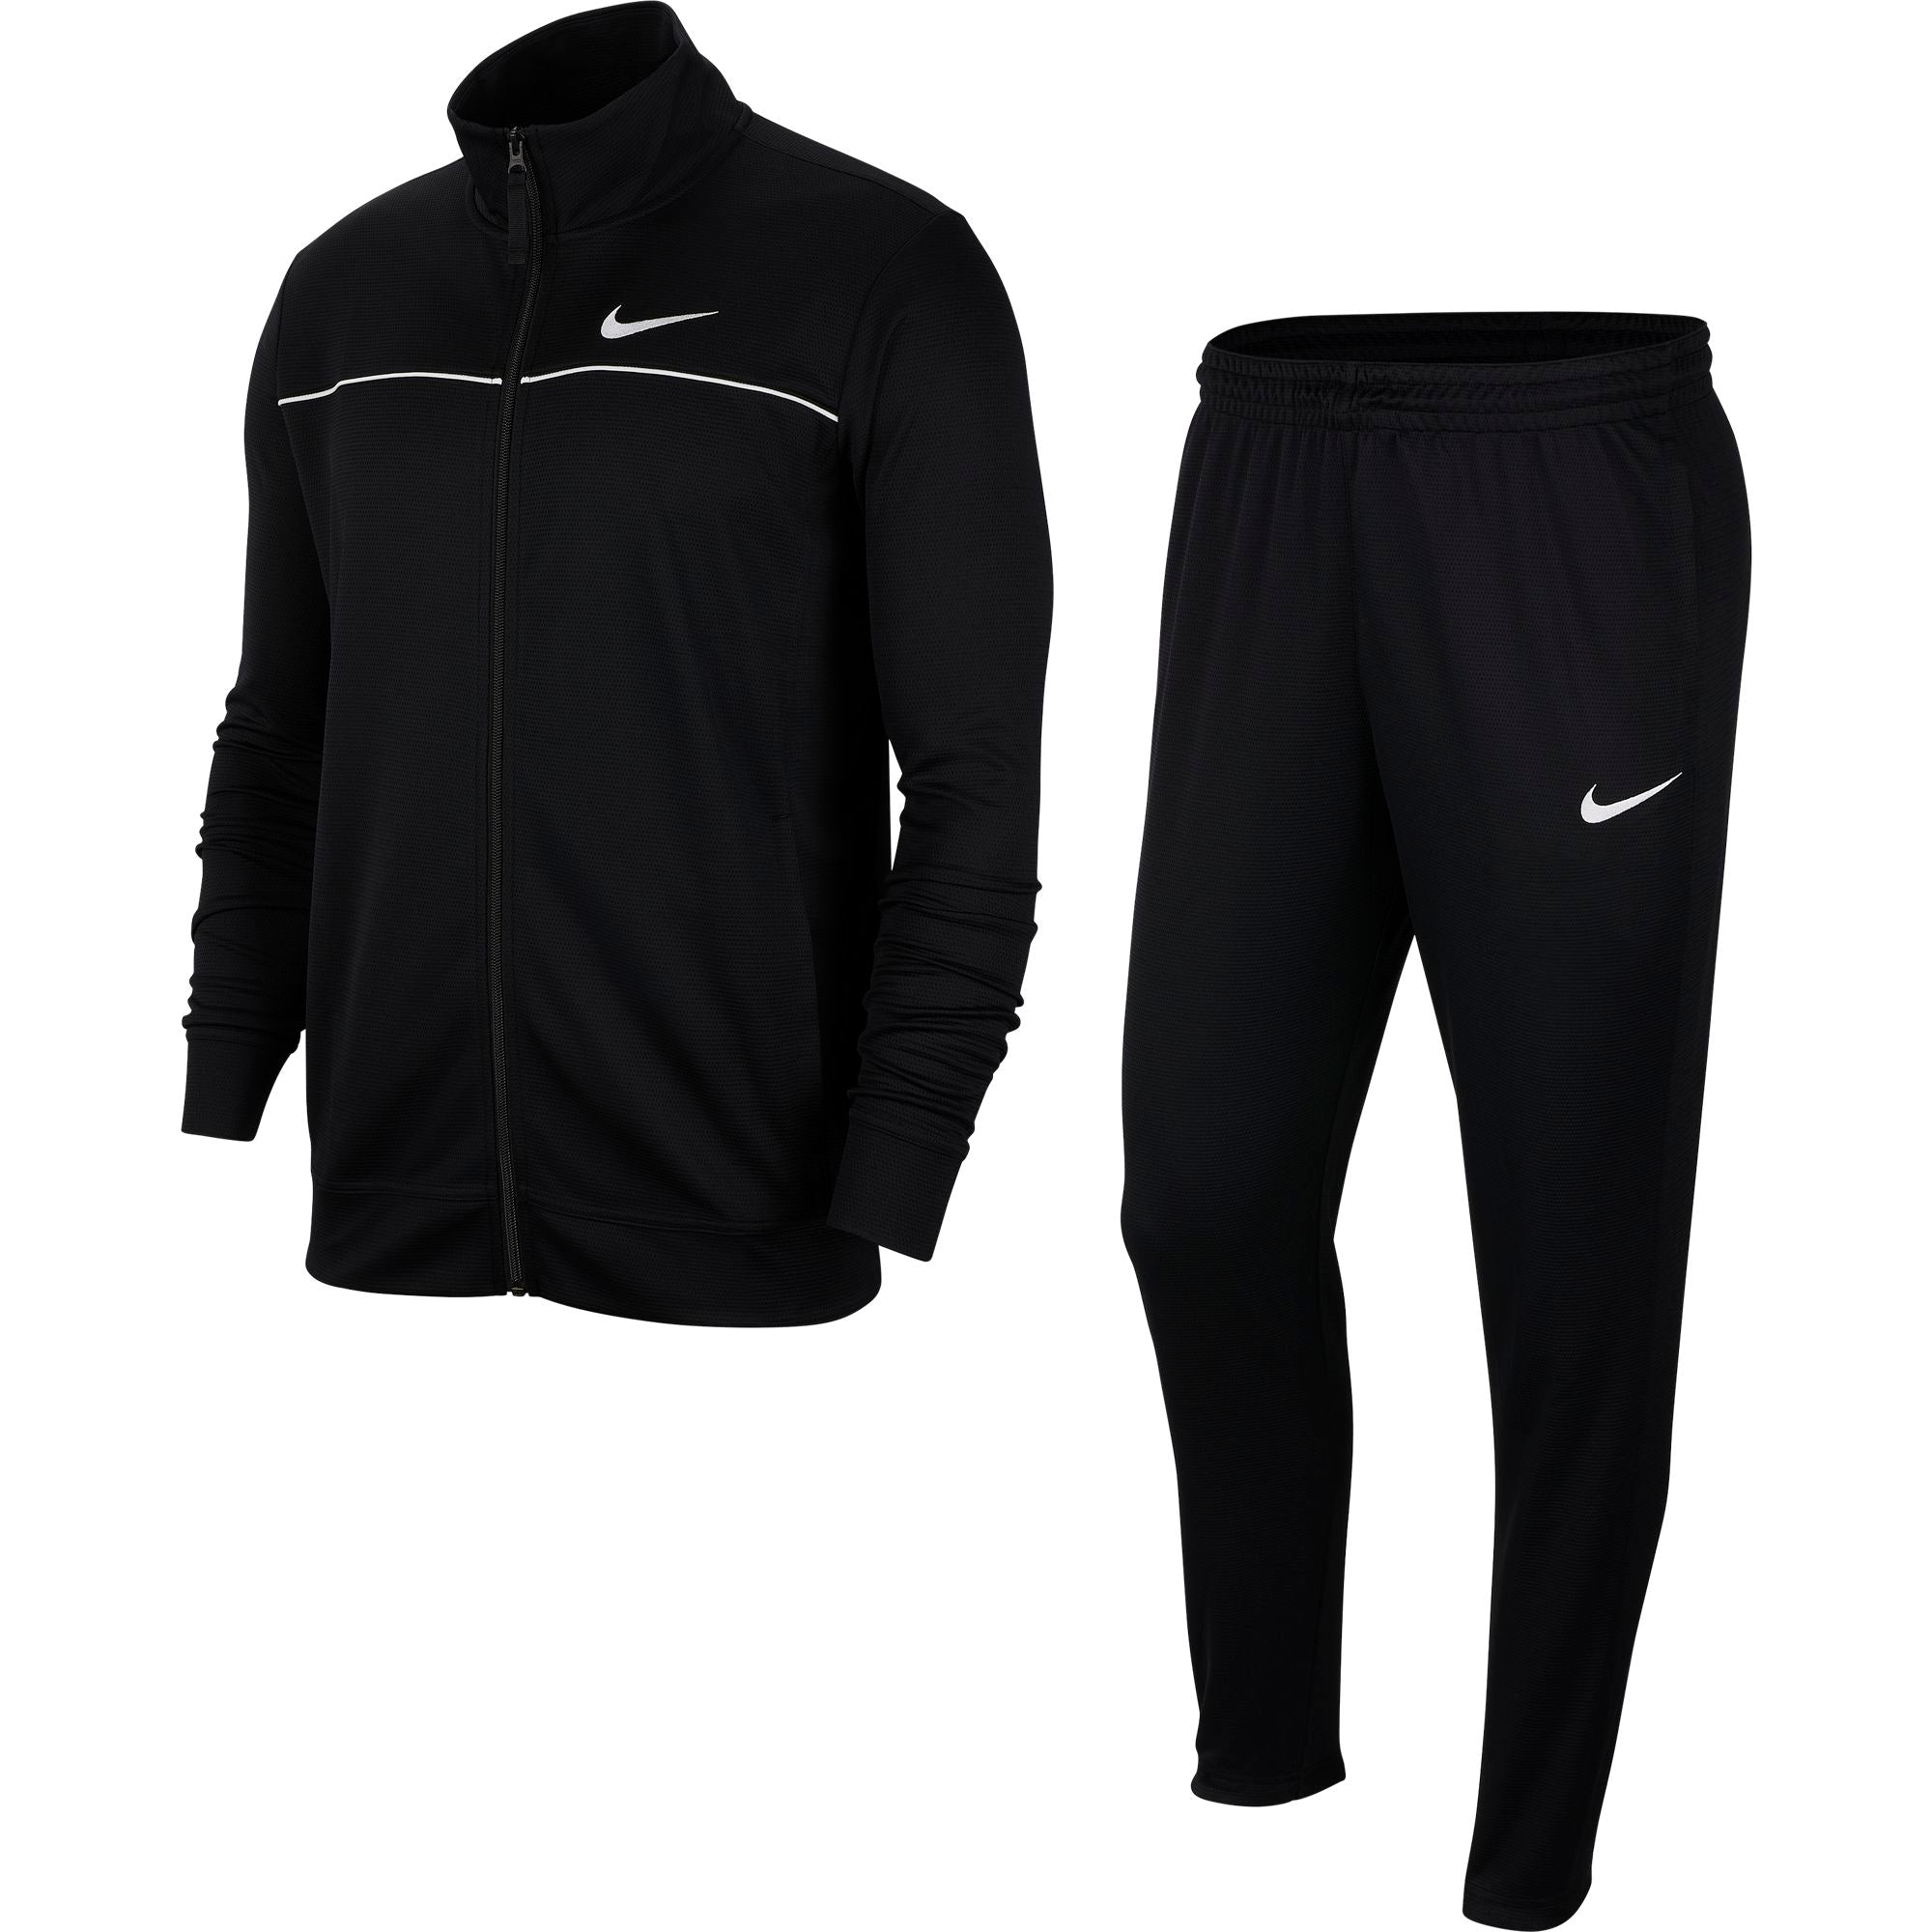 Nike Basketball Rivalry Tracksuit Jacket - NK-CK4157-010